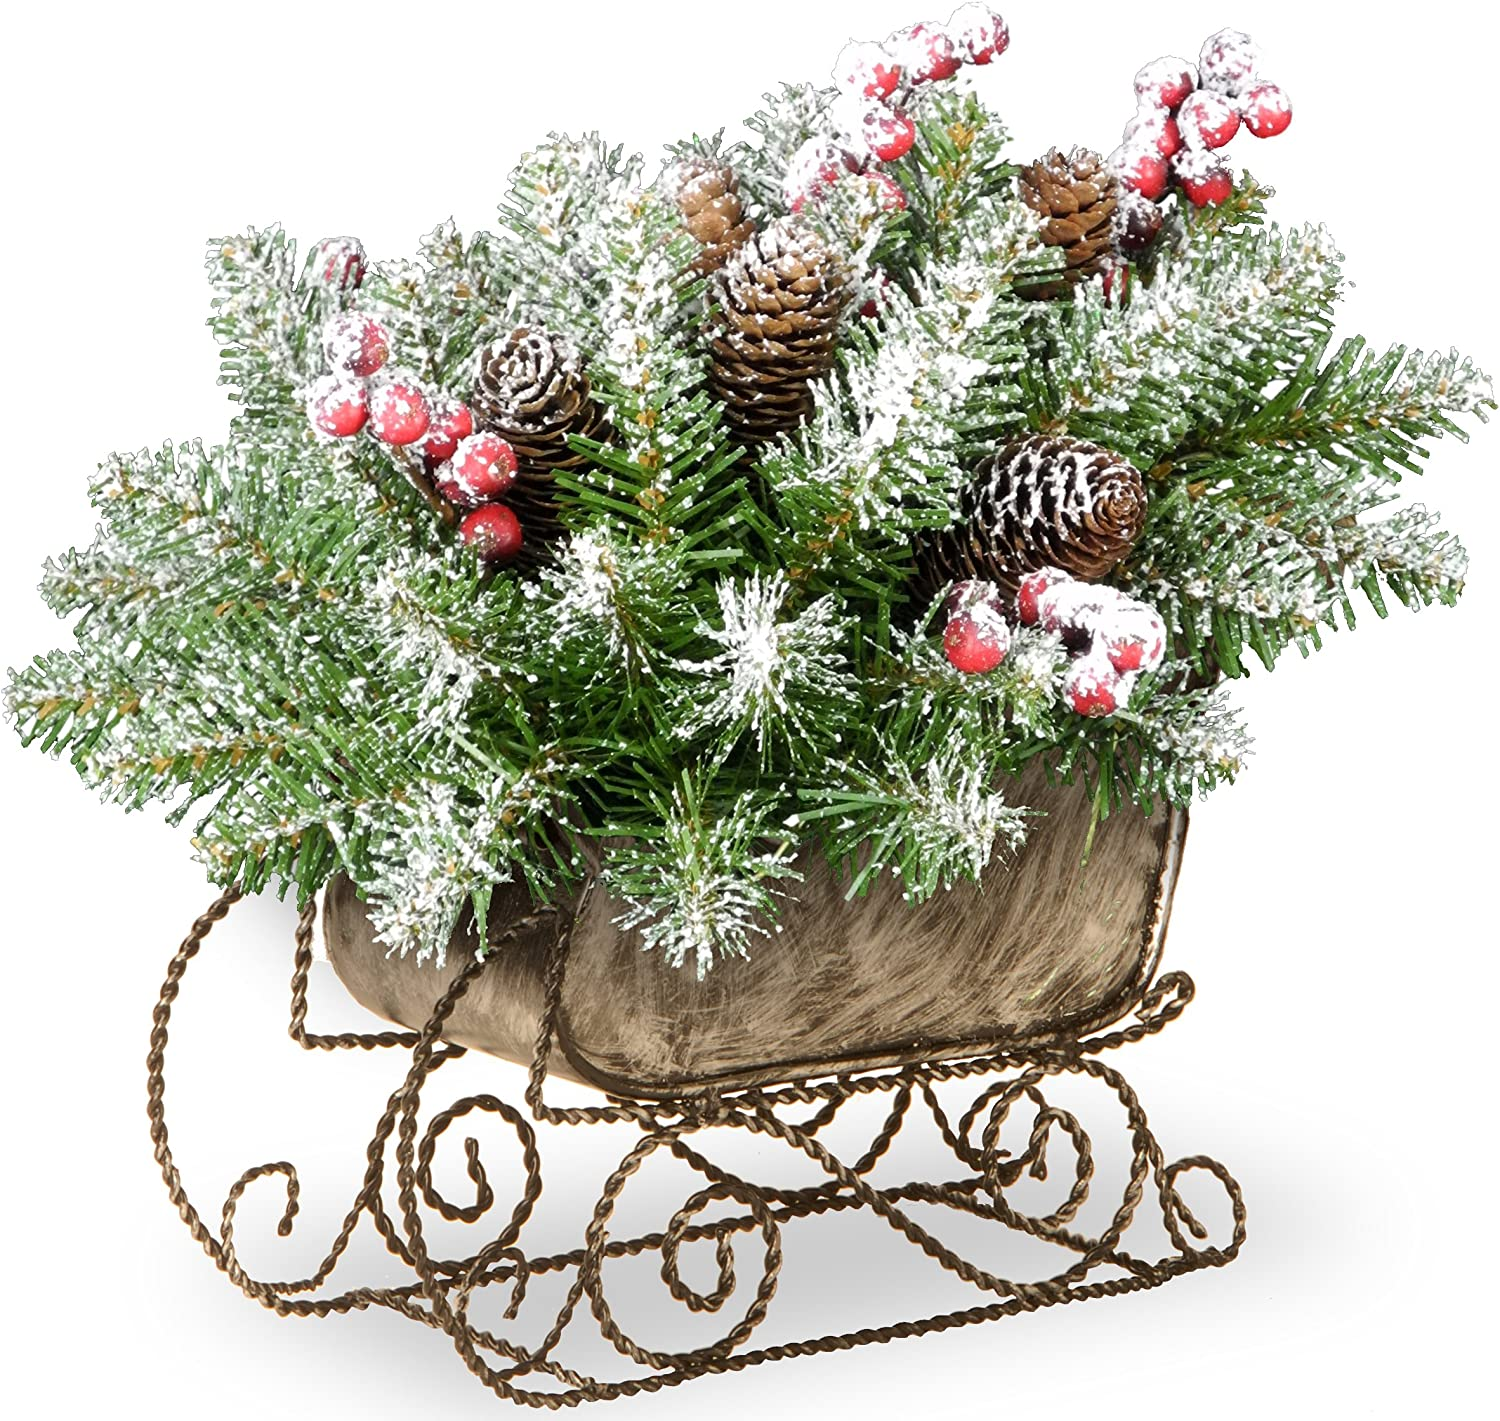 National Tree 10 Inch Dunhill Fir Sleigh with 6 Cones, 5 Red Berries and Snow (DUF3-800-10-1)